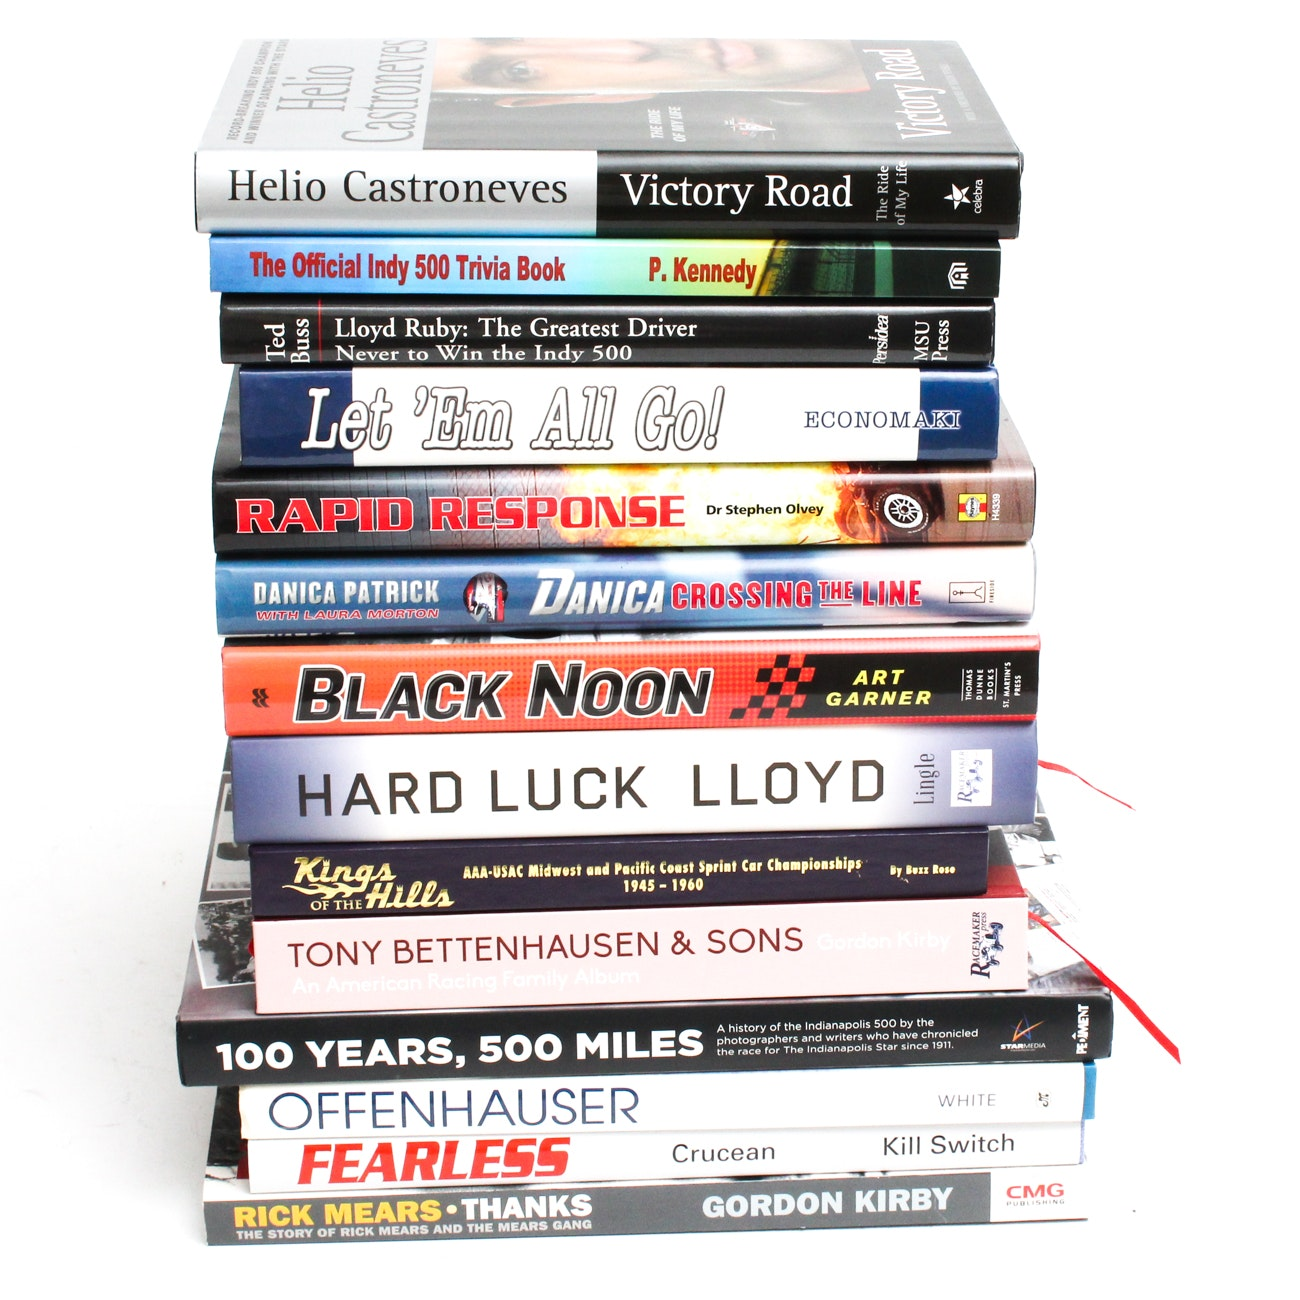 Hardcover Auto Racing Books Focused on Indianapolis 500 Races and Drivers